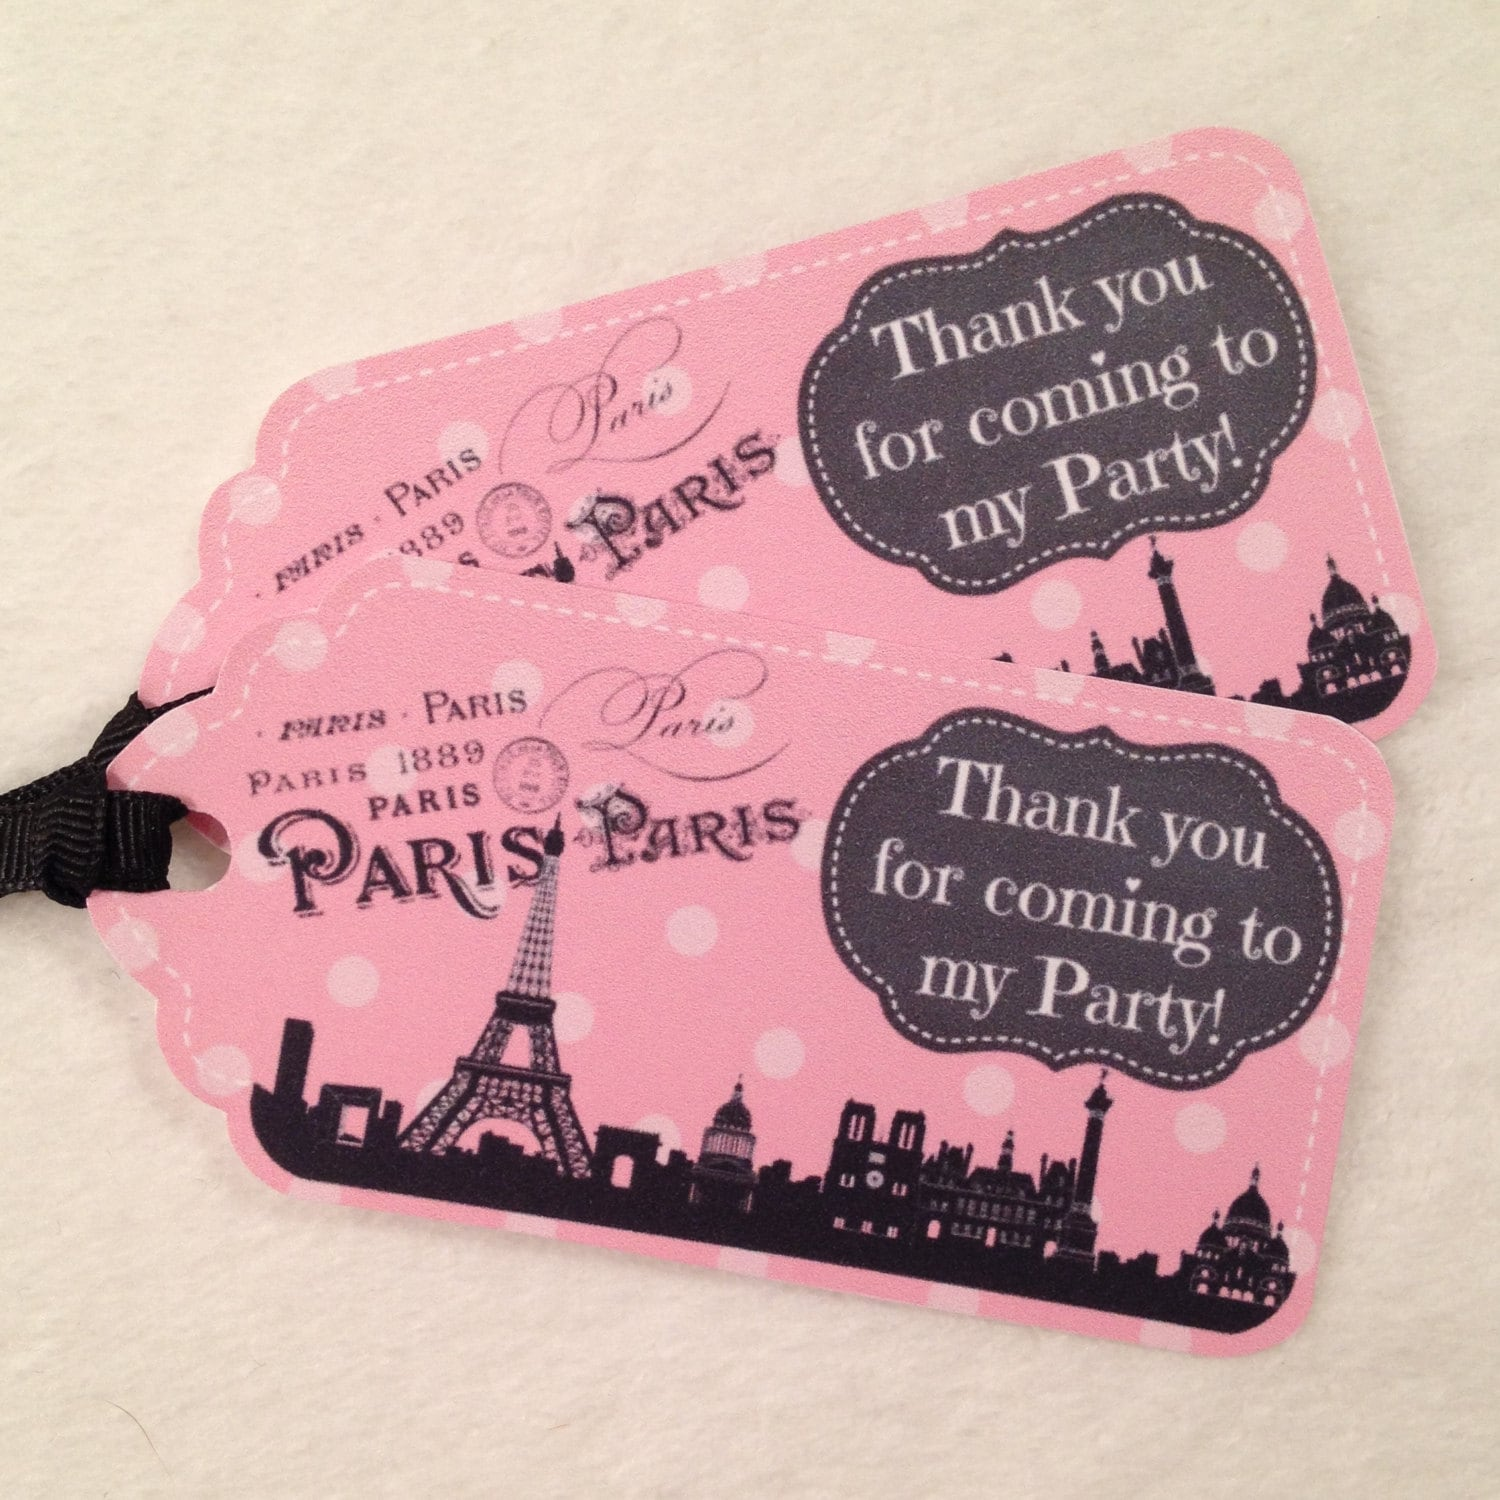 10 Meet me in Paris Party Favor Gift Tags Birthday Party